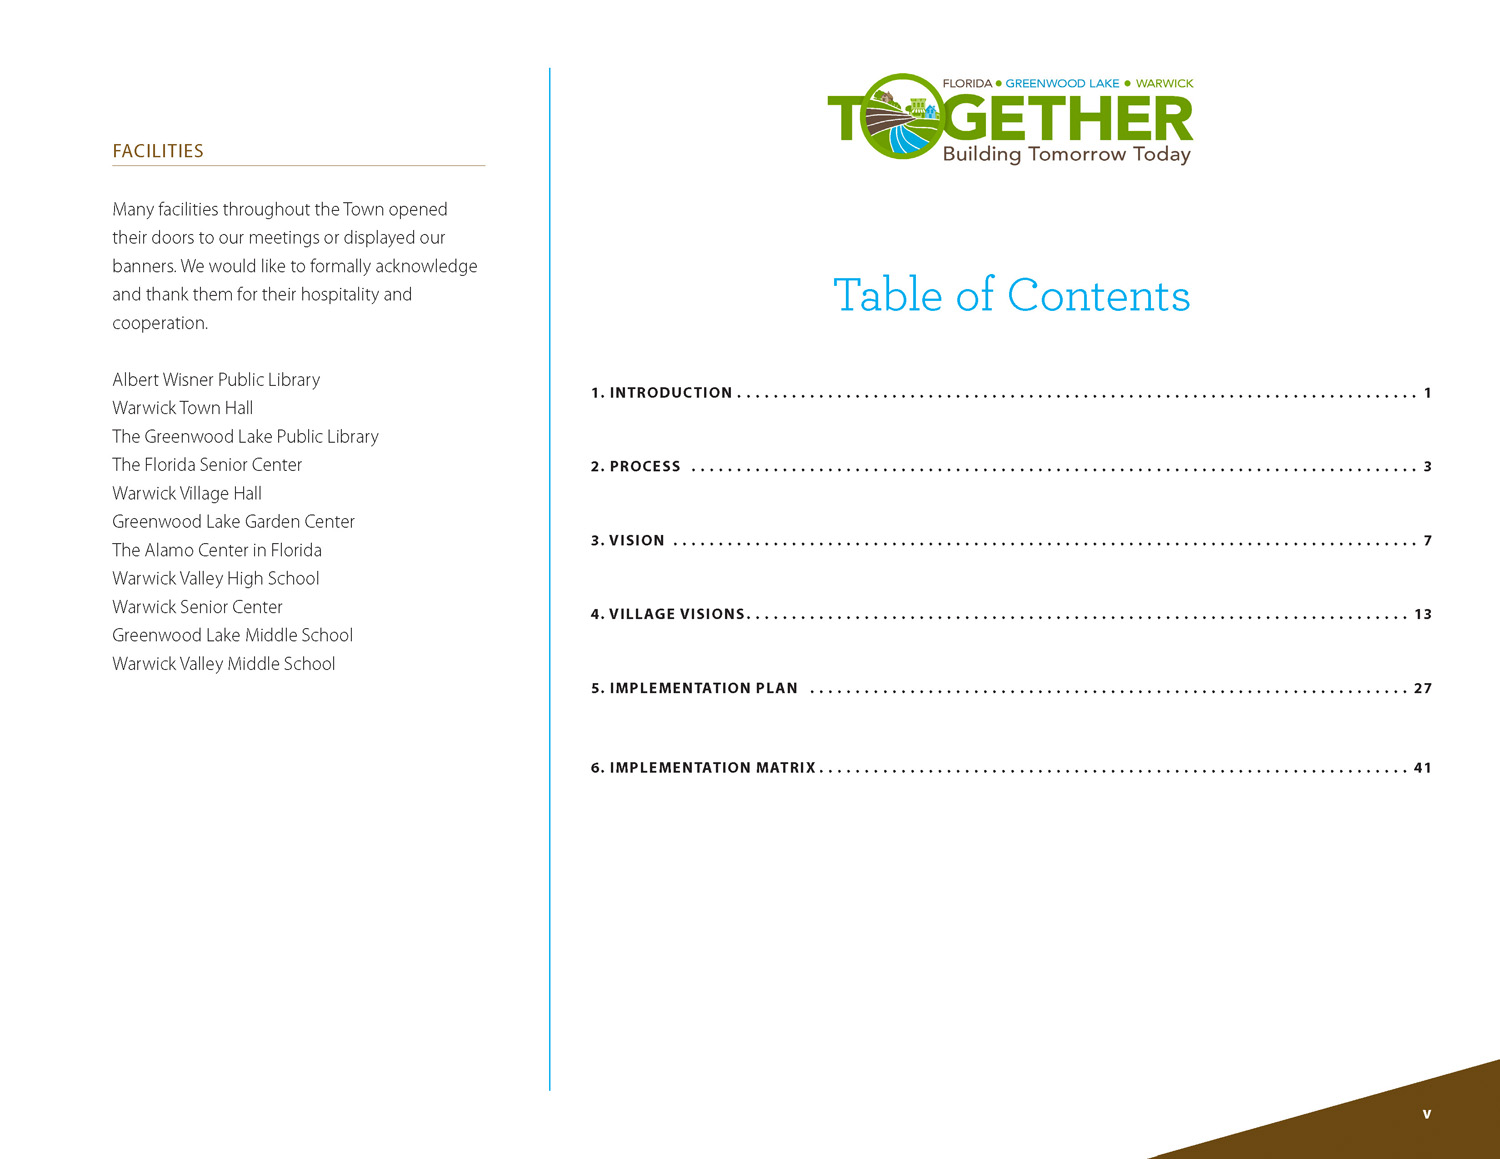 TOGETHER REPORT_Page_05.jpg